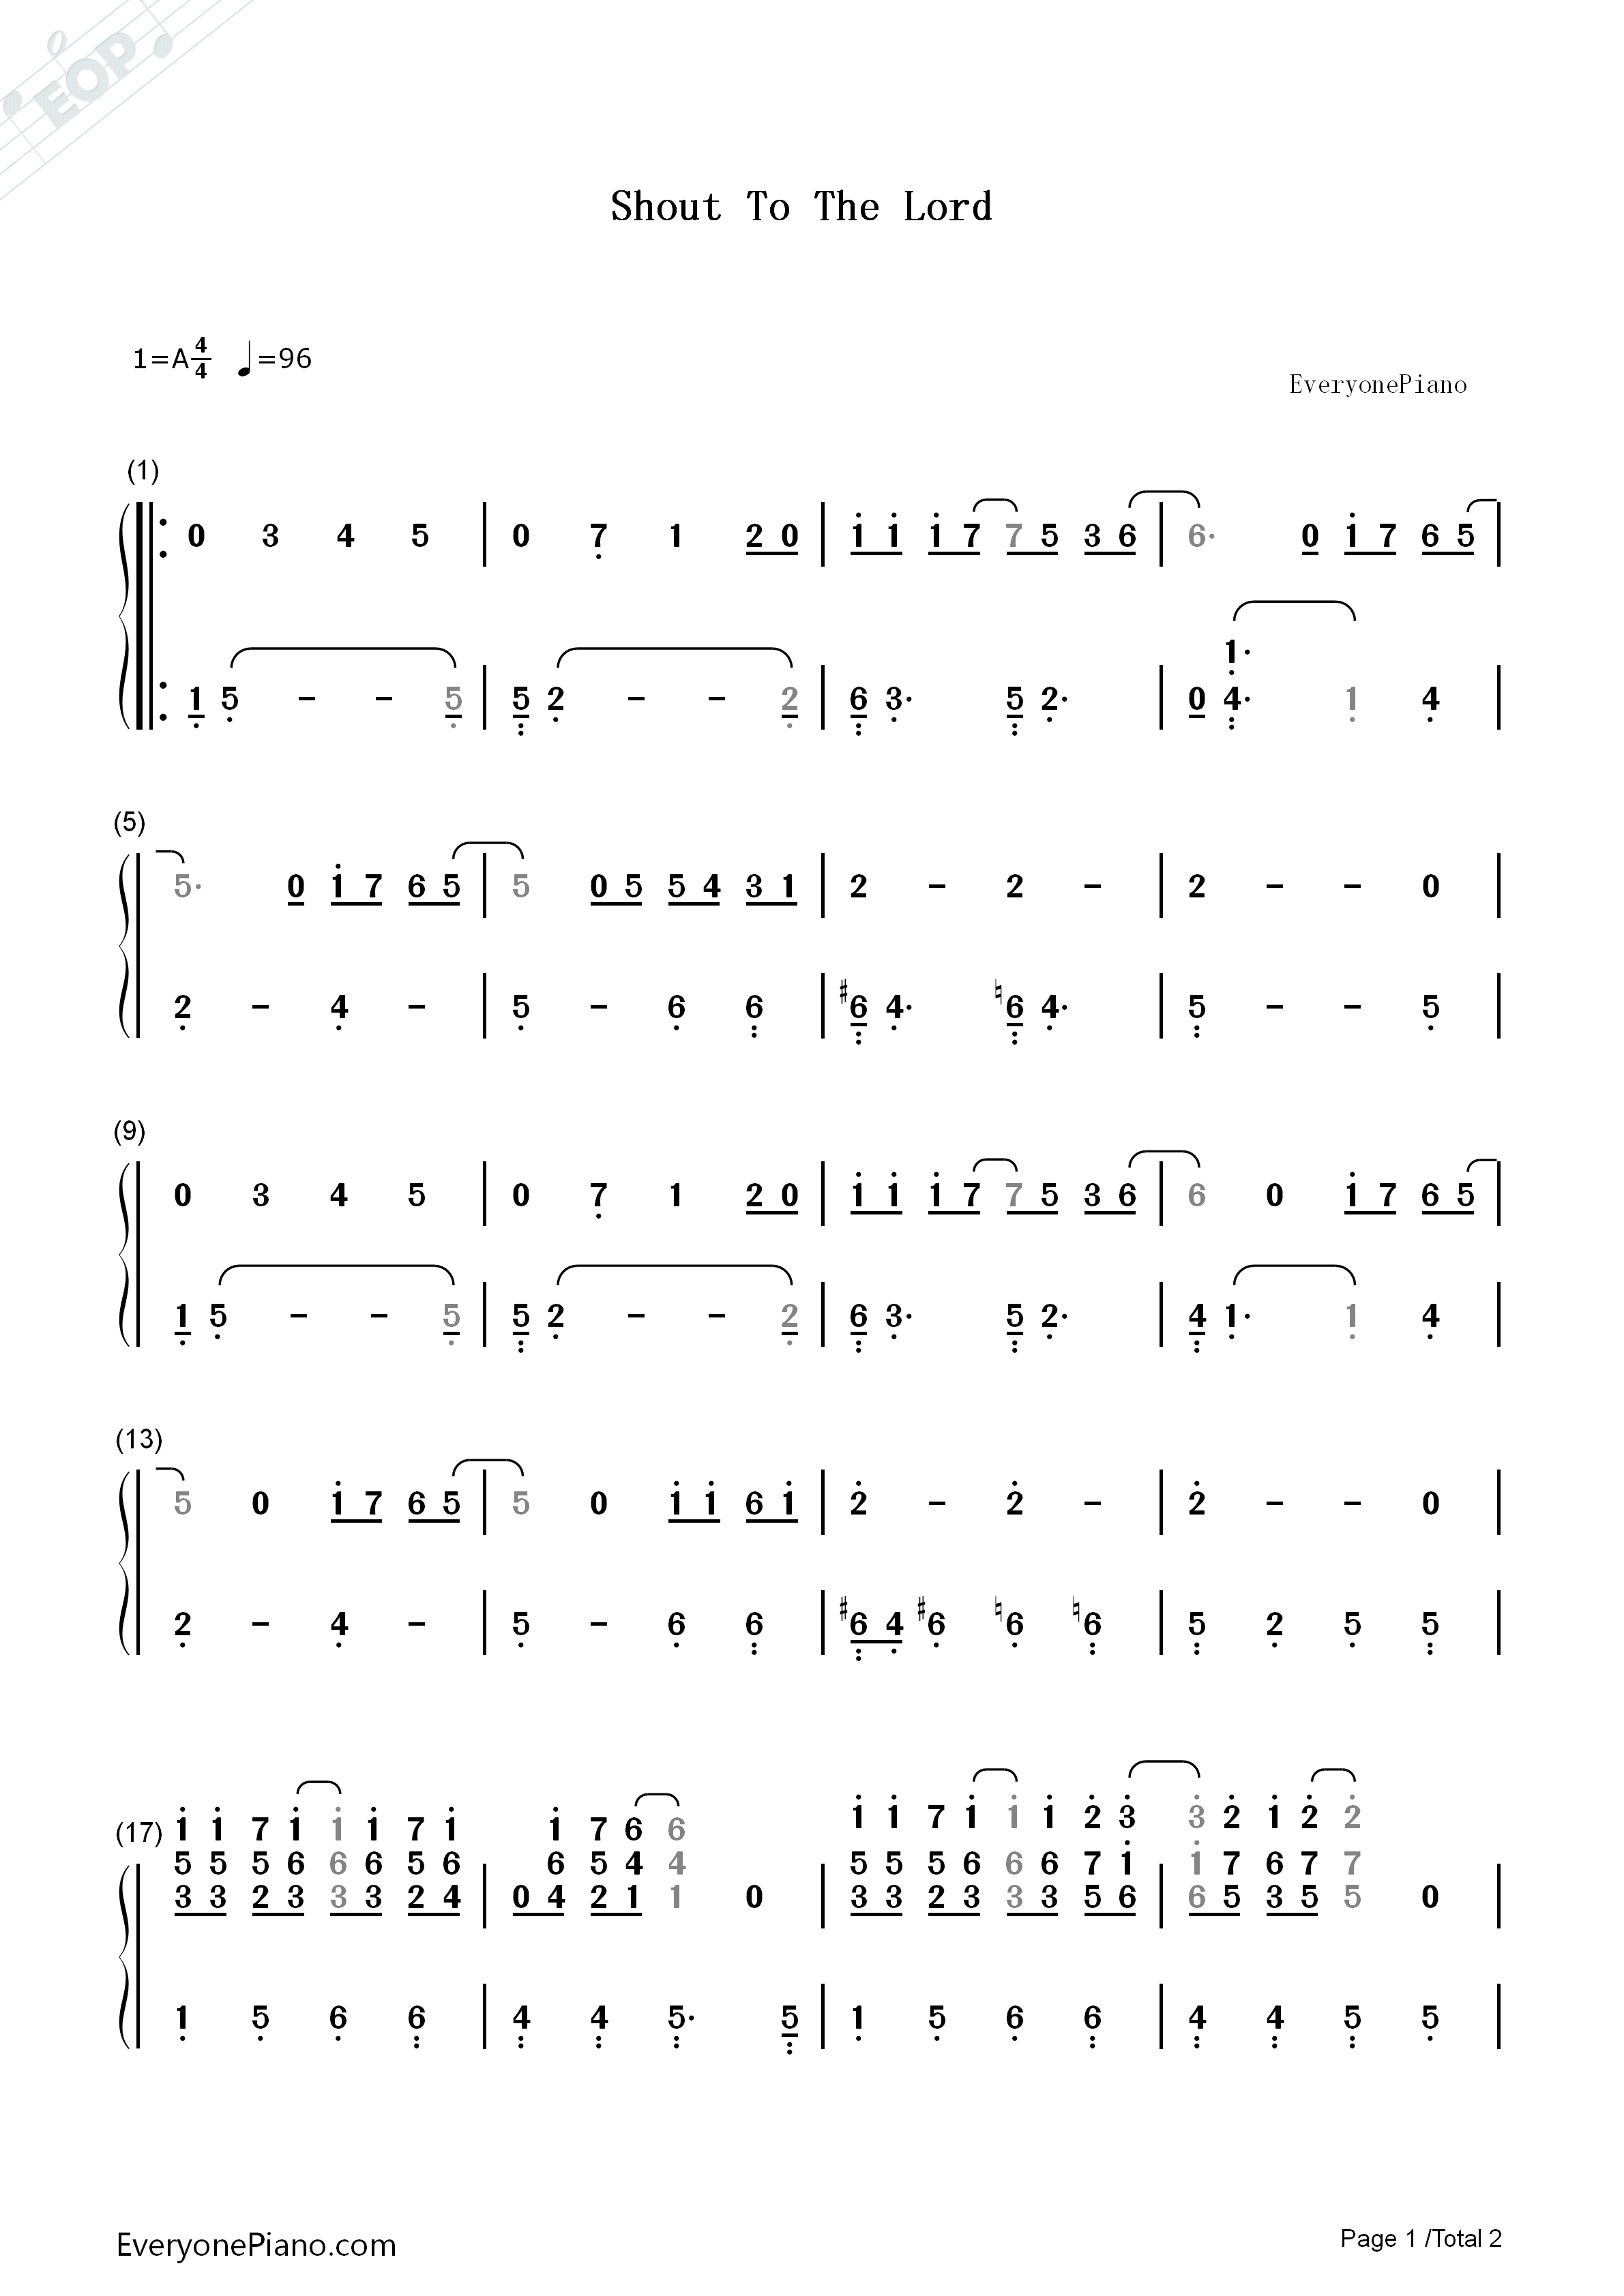 Shout to the lord hillsong numbered musical notation preview 1 listen now print sheet shout to the lord hillsong numbered musical notation preview 1 hexwebz Gallery